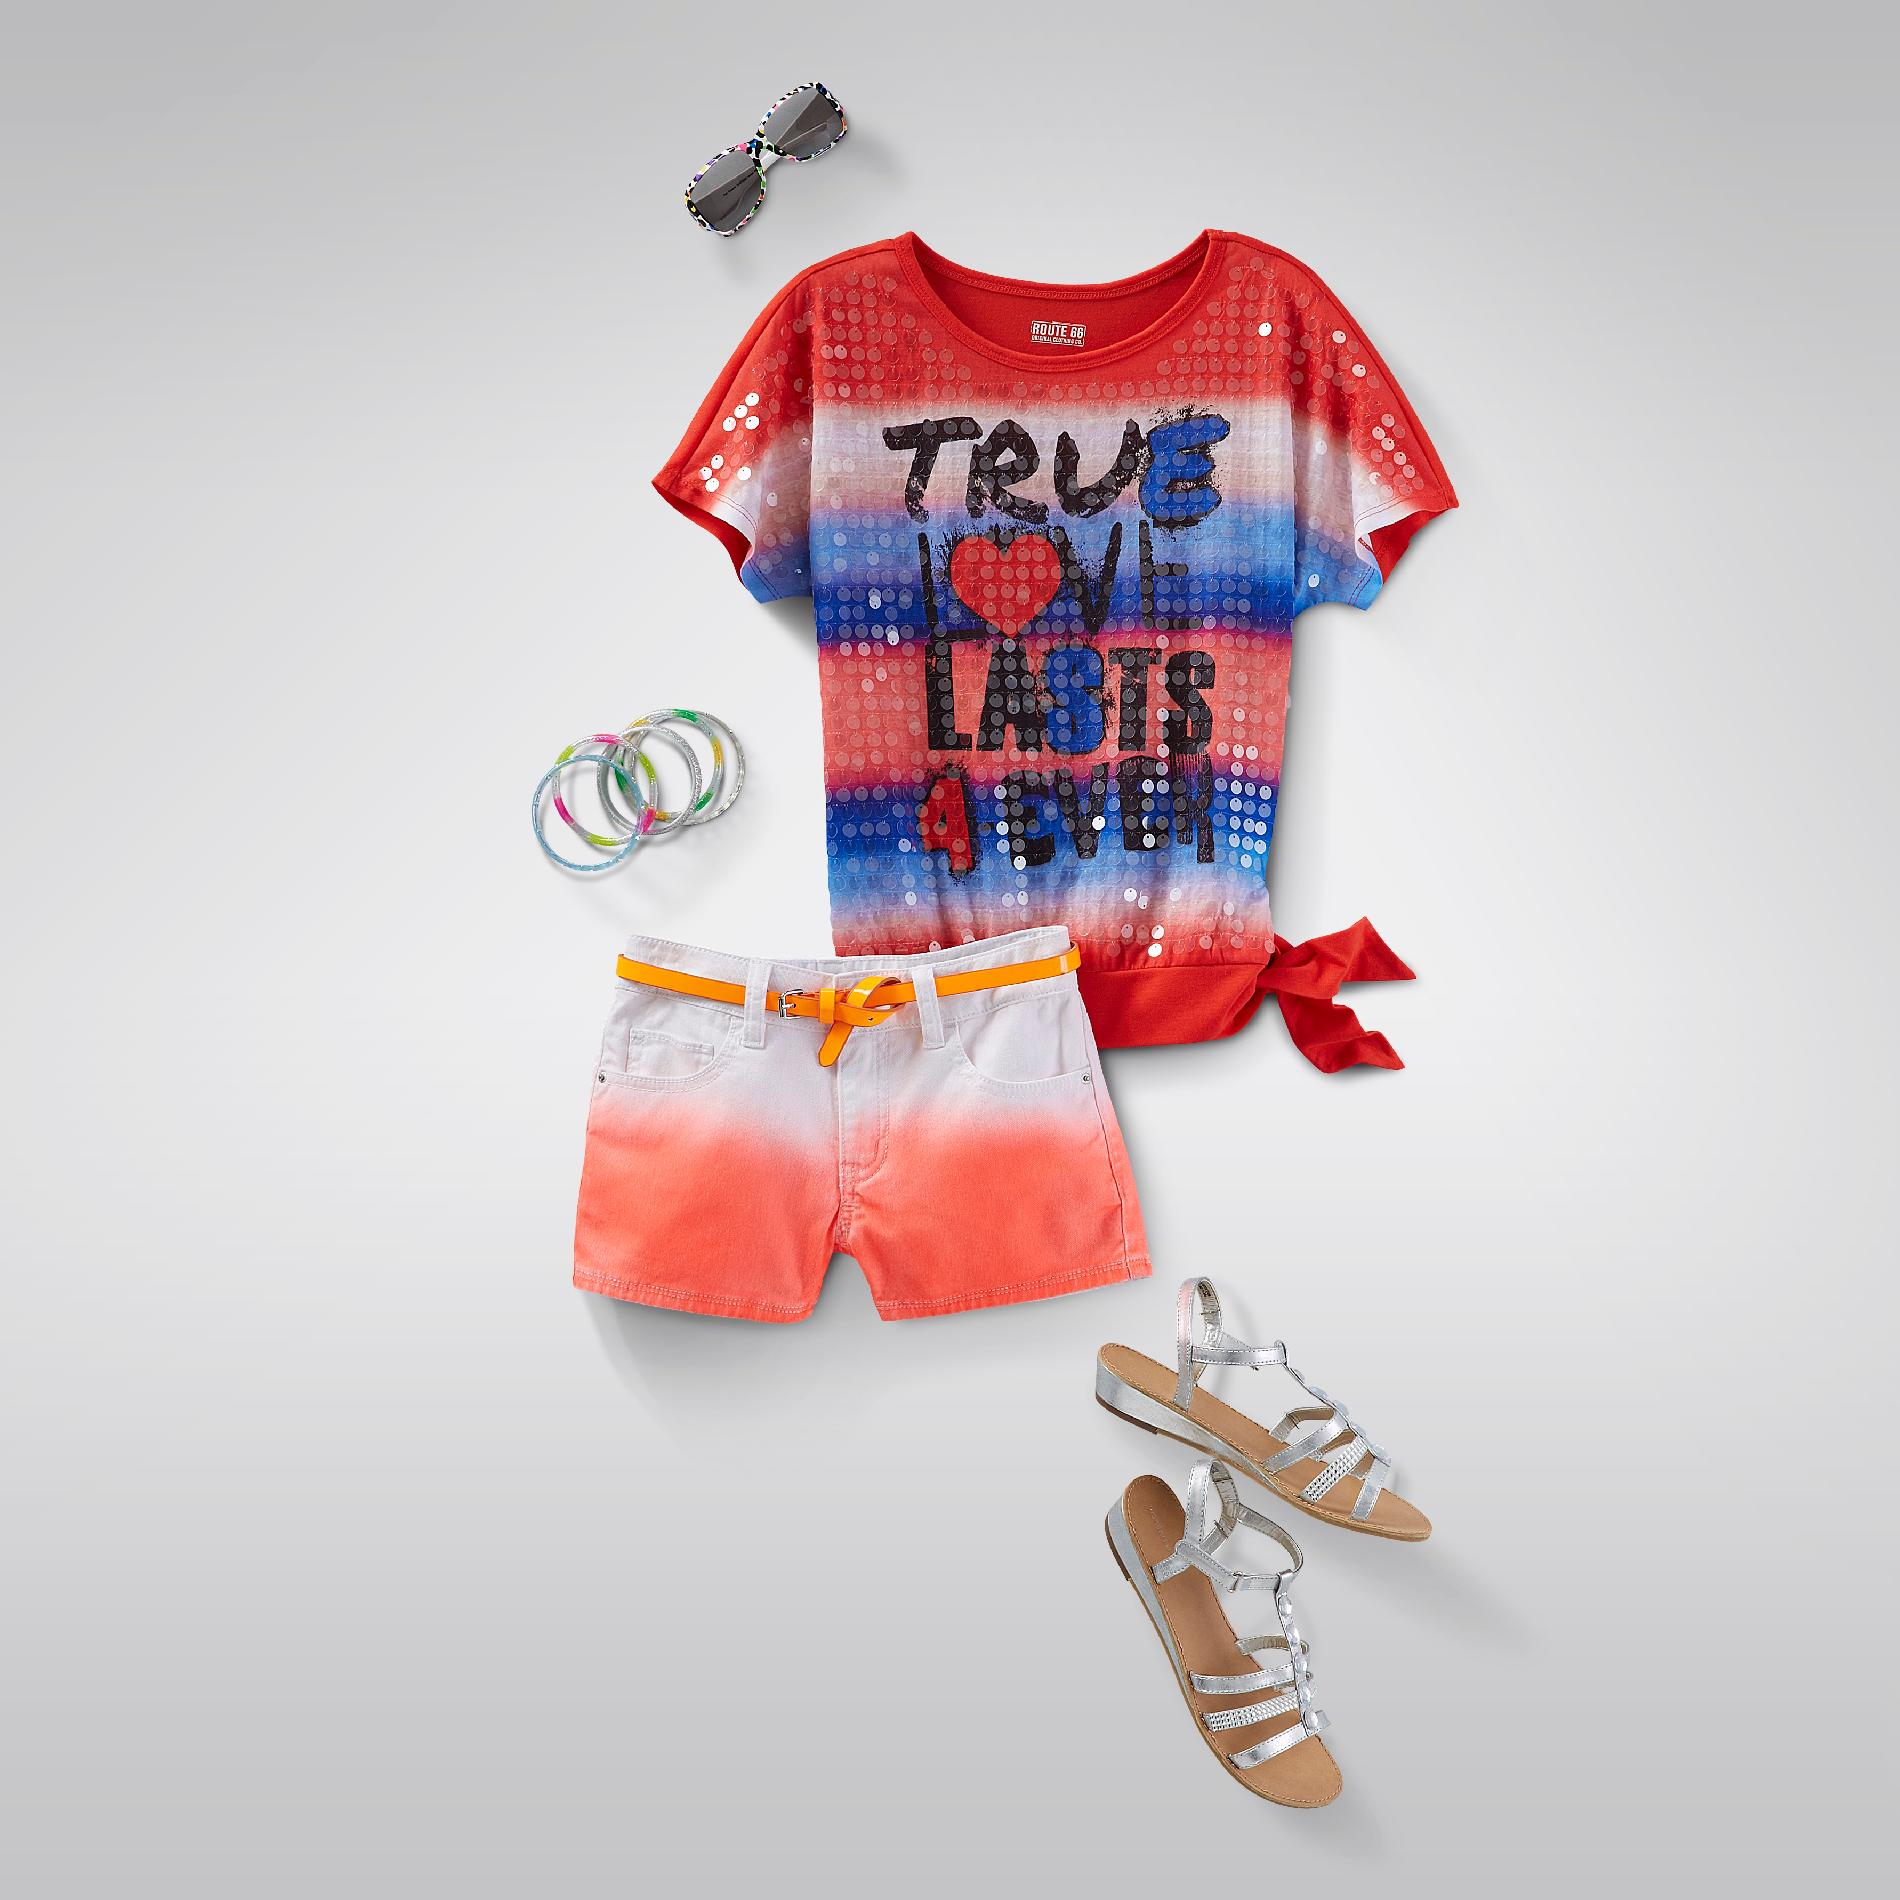 Snap, Sparkle, Pop Outfit at Kmart.com